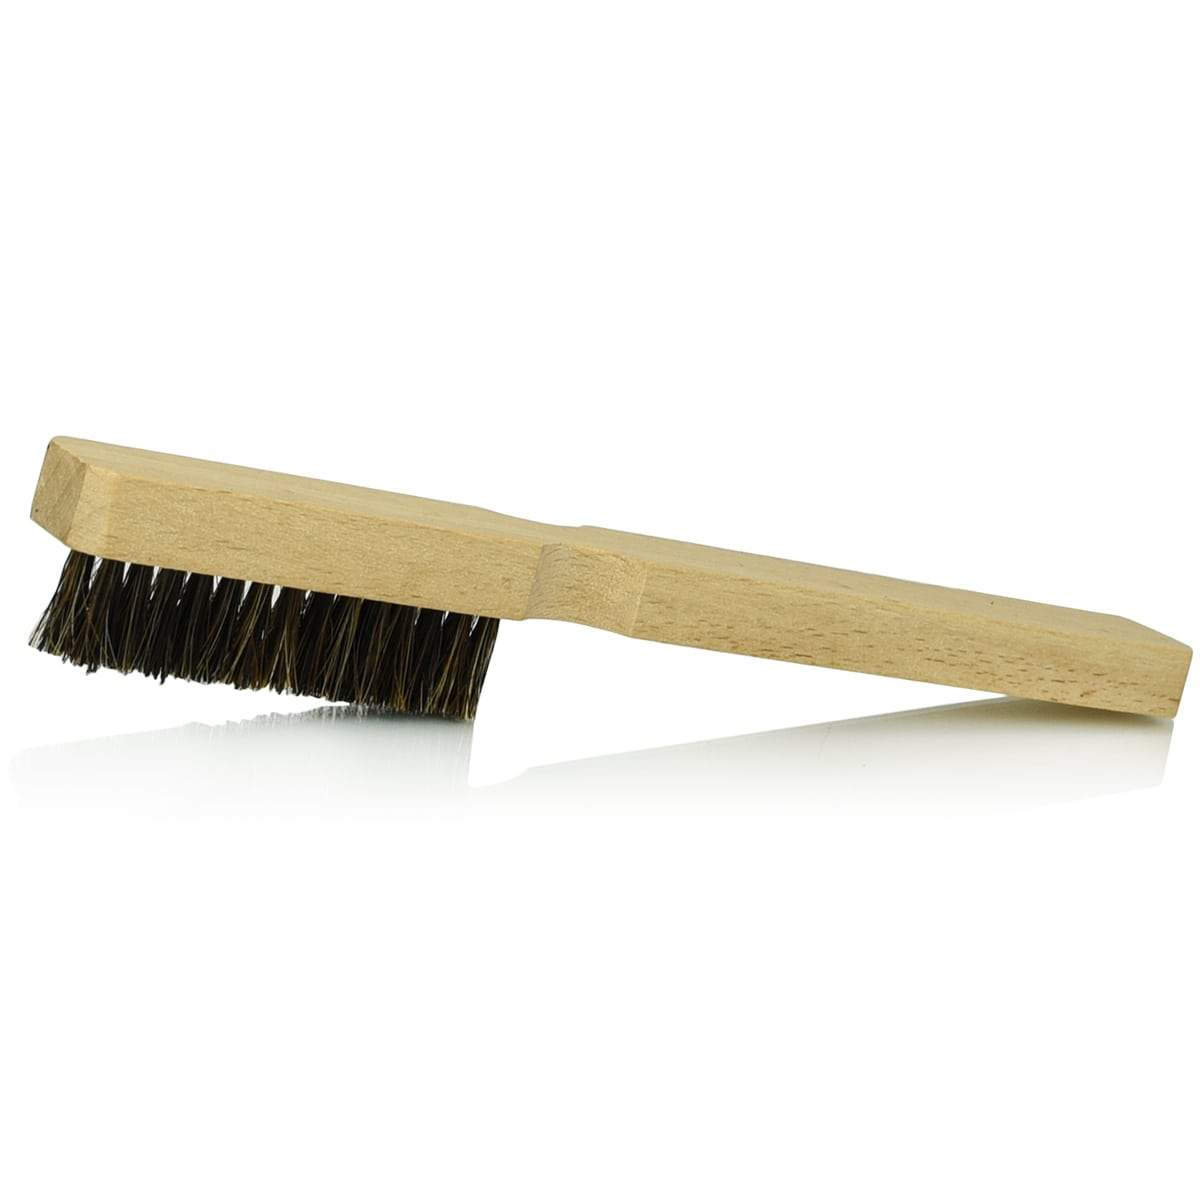 Polishing Pad Cleaning Brush